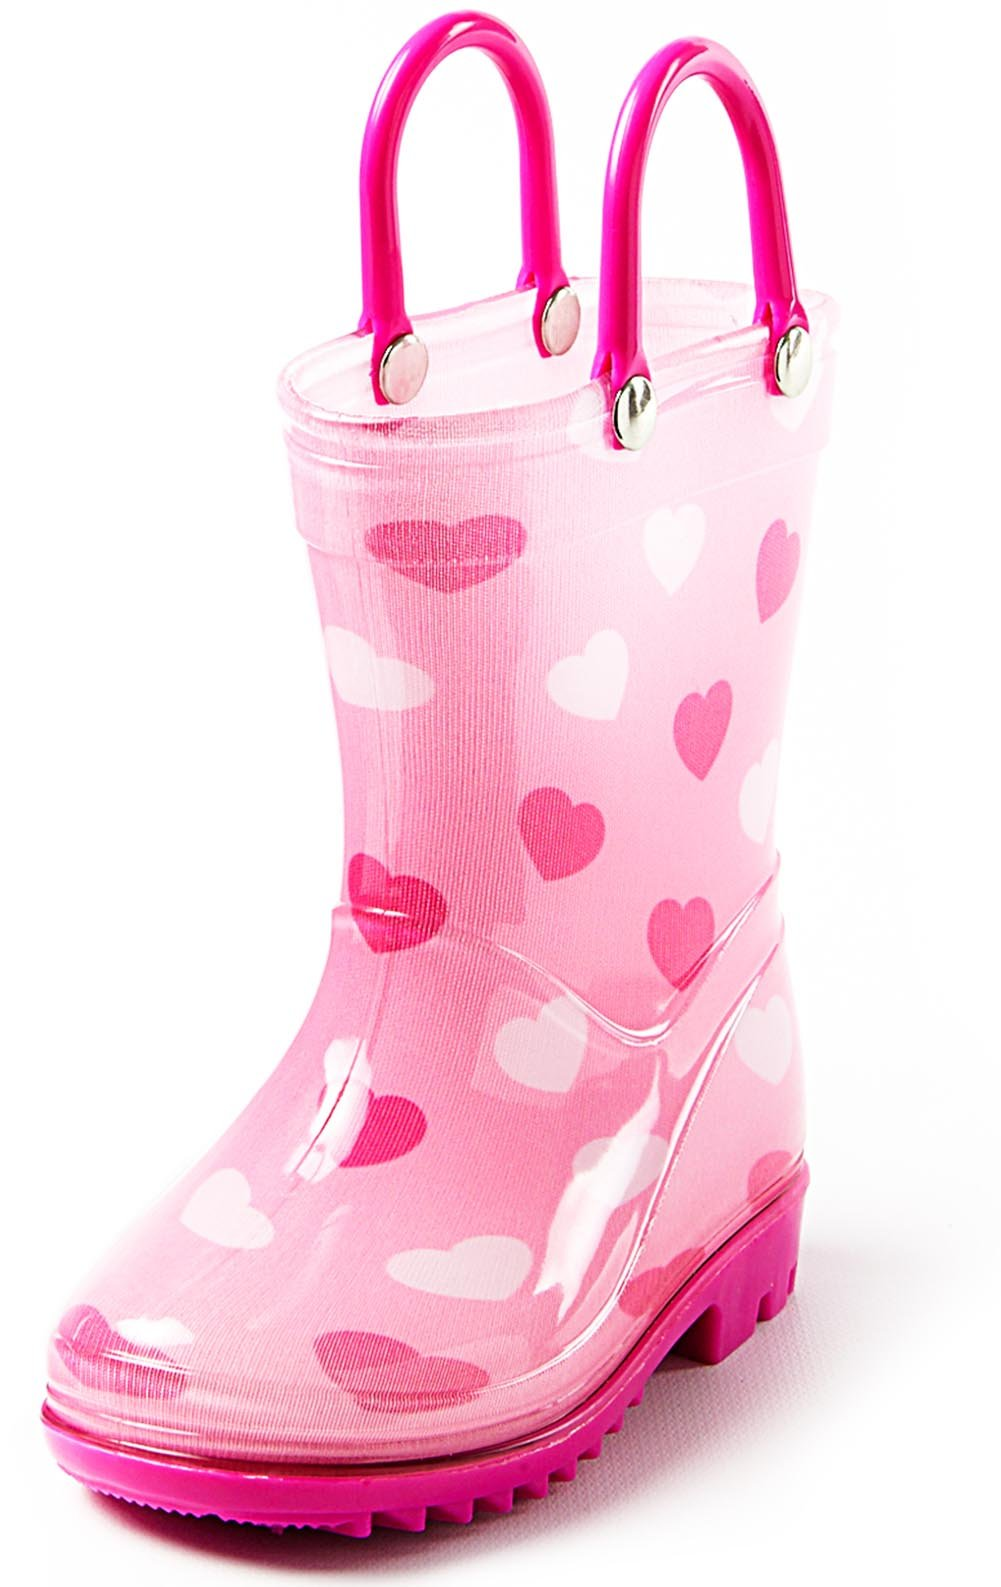 Puddle Play Toddler and Kids Rain Boots with Easy On Handles – Size 7 - Girls Pink Hearts Design – by